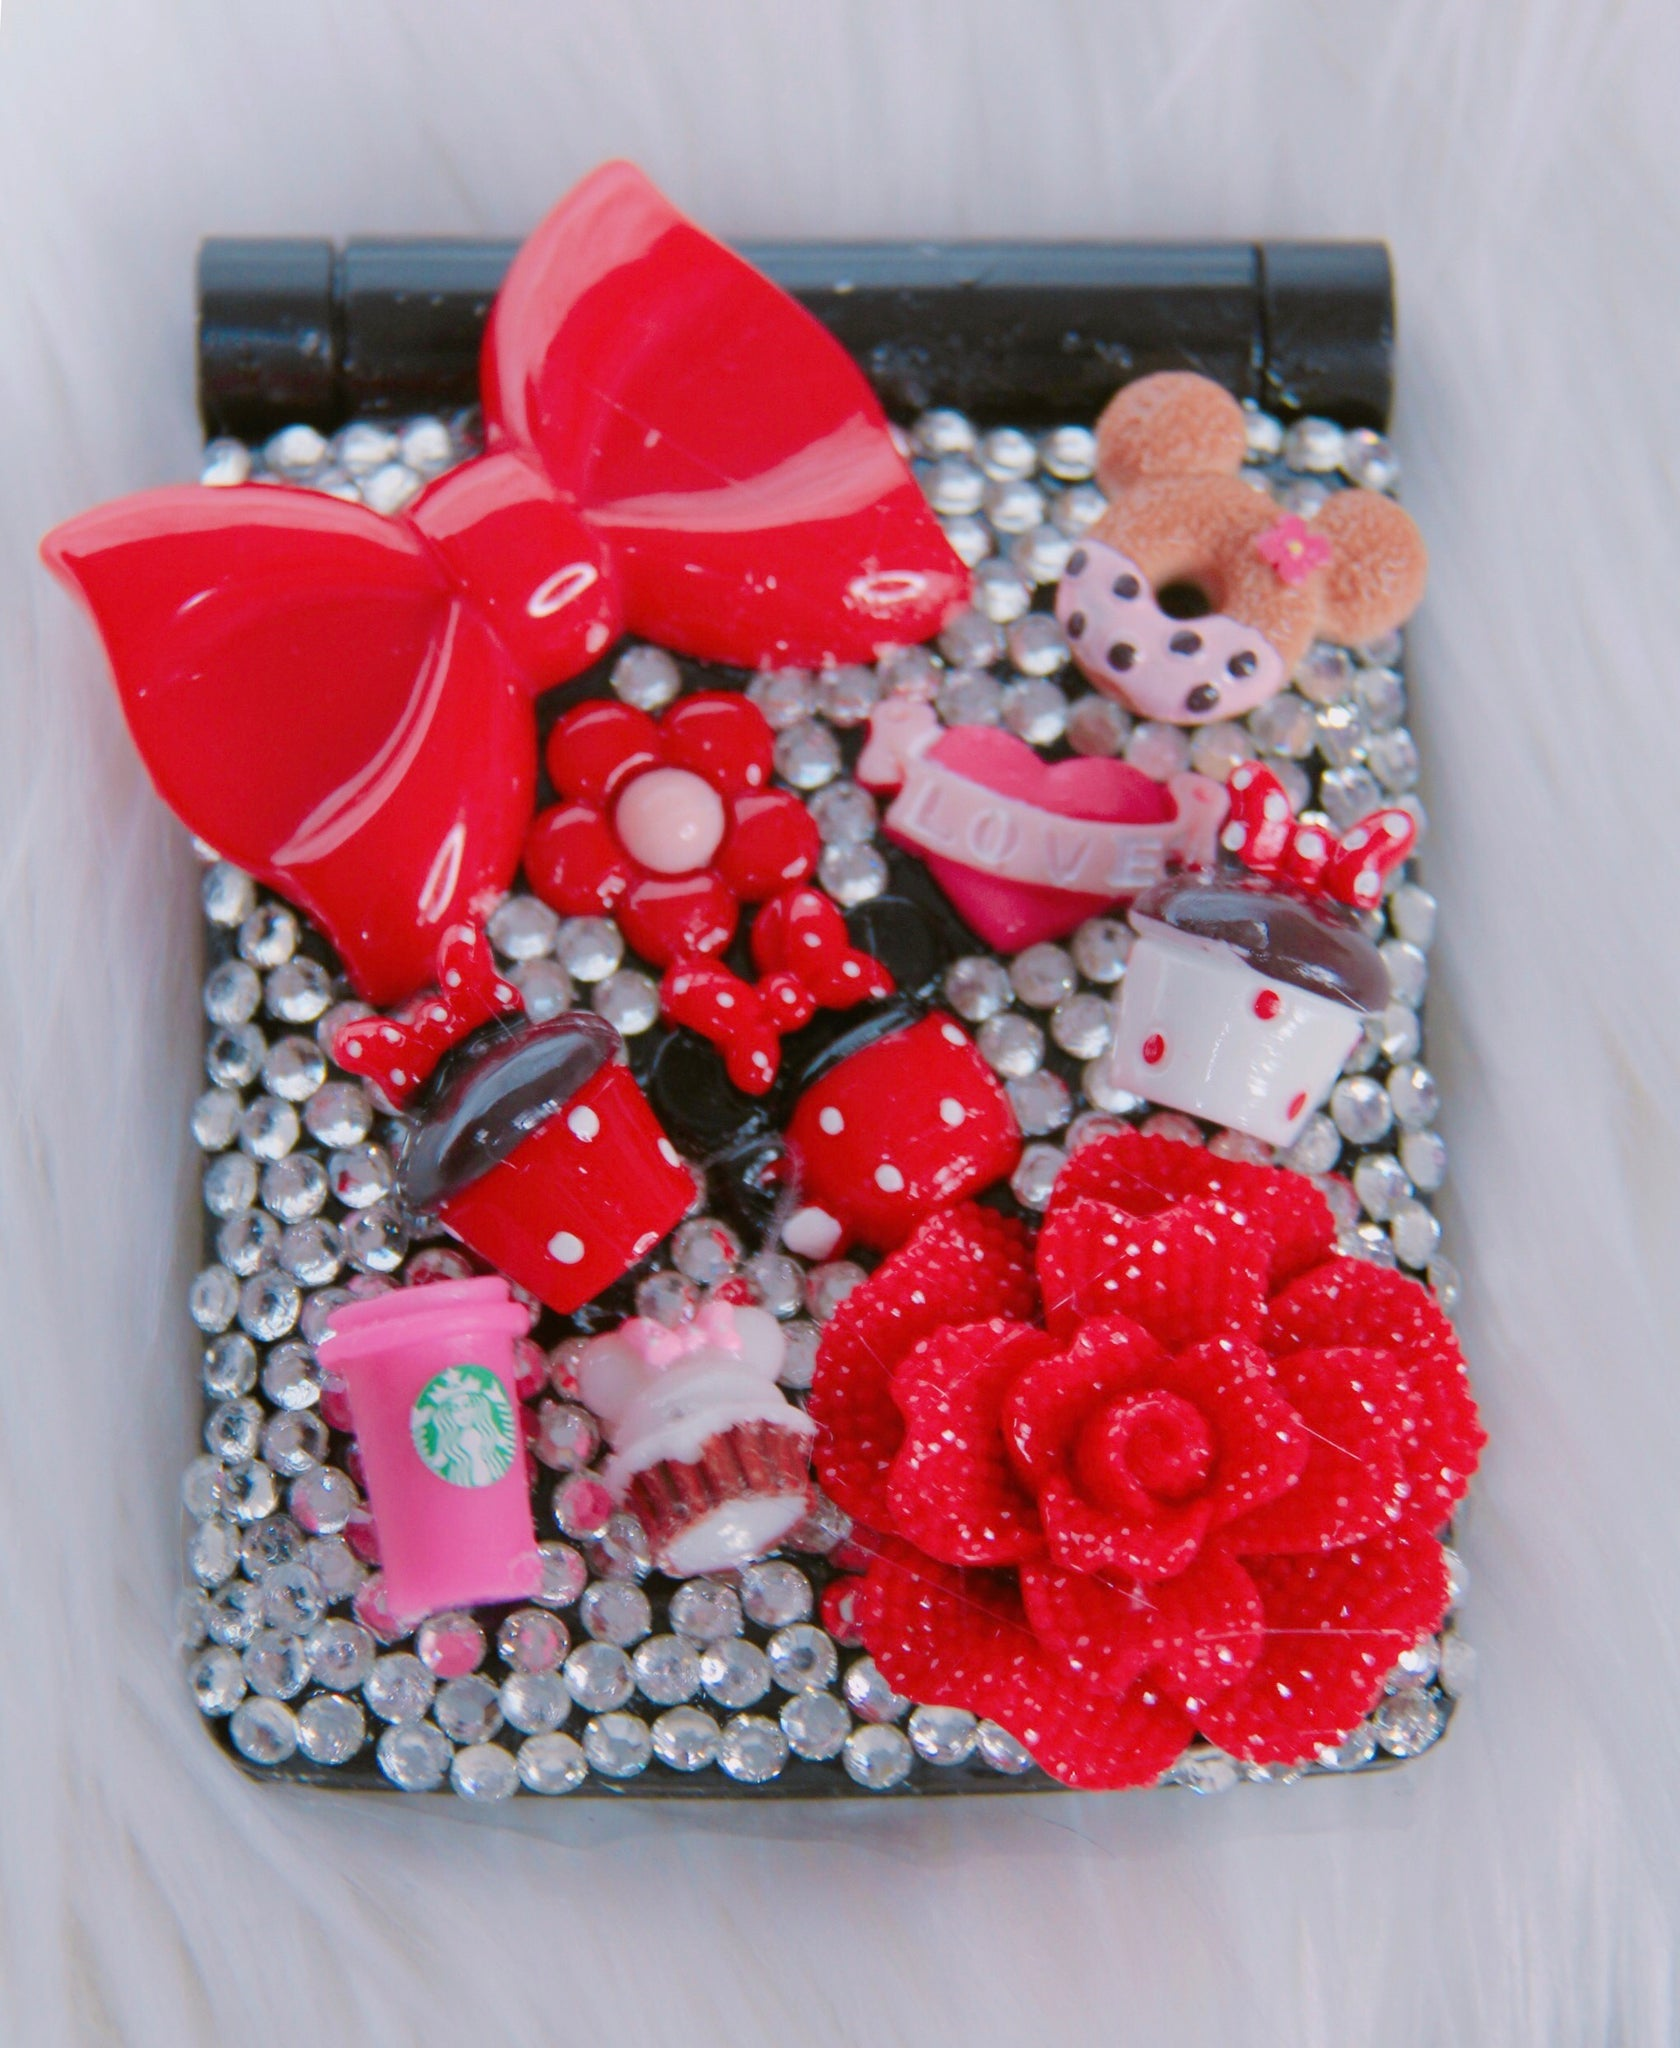 Minnie Mouse inspired compact mirror with lights